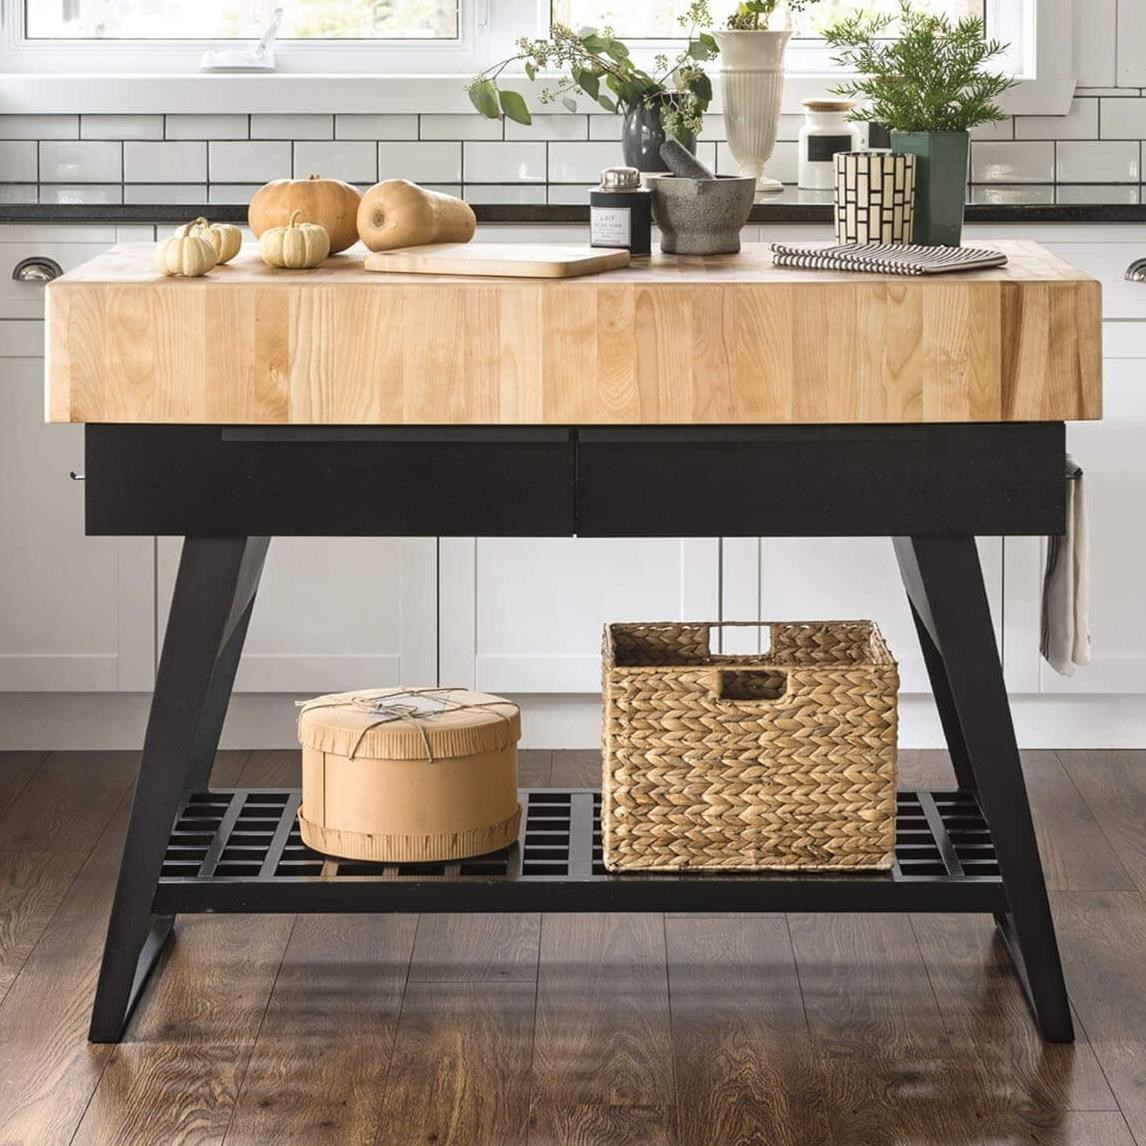 East Side Customizable Kitchen Island by Canadel at Home Collections Furniture